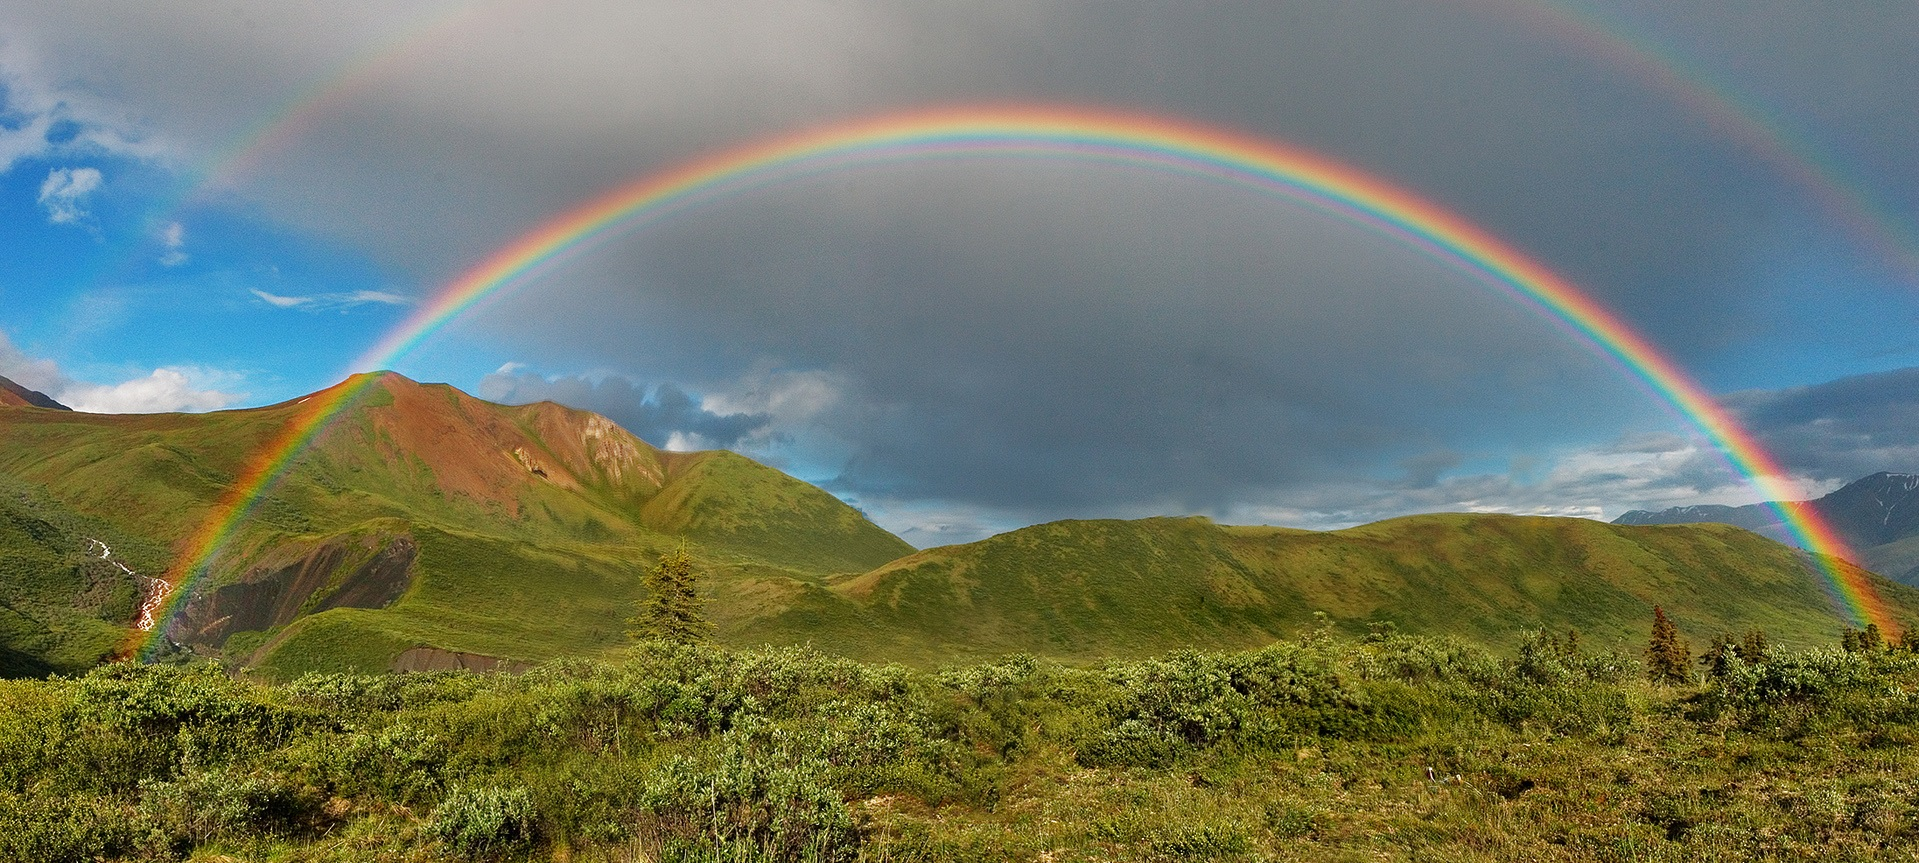 Full featured double rainbow in Wrangell-St. Elias National Park, Alaska Airbrushed (cc-by-sa-2.5). This is a retouched picture by Edg2s. Original picture by Eric Rolph. More details here: https://commons.wikimedia.org/wiki/File:Double-alaskan-rainbow-airbrushed.jpg Full featured double rainbow in Wrangell-St. Elias National Park, Alaska. By Eric Rolph (cc-by-sa-2.5)